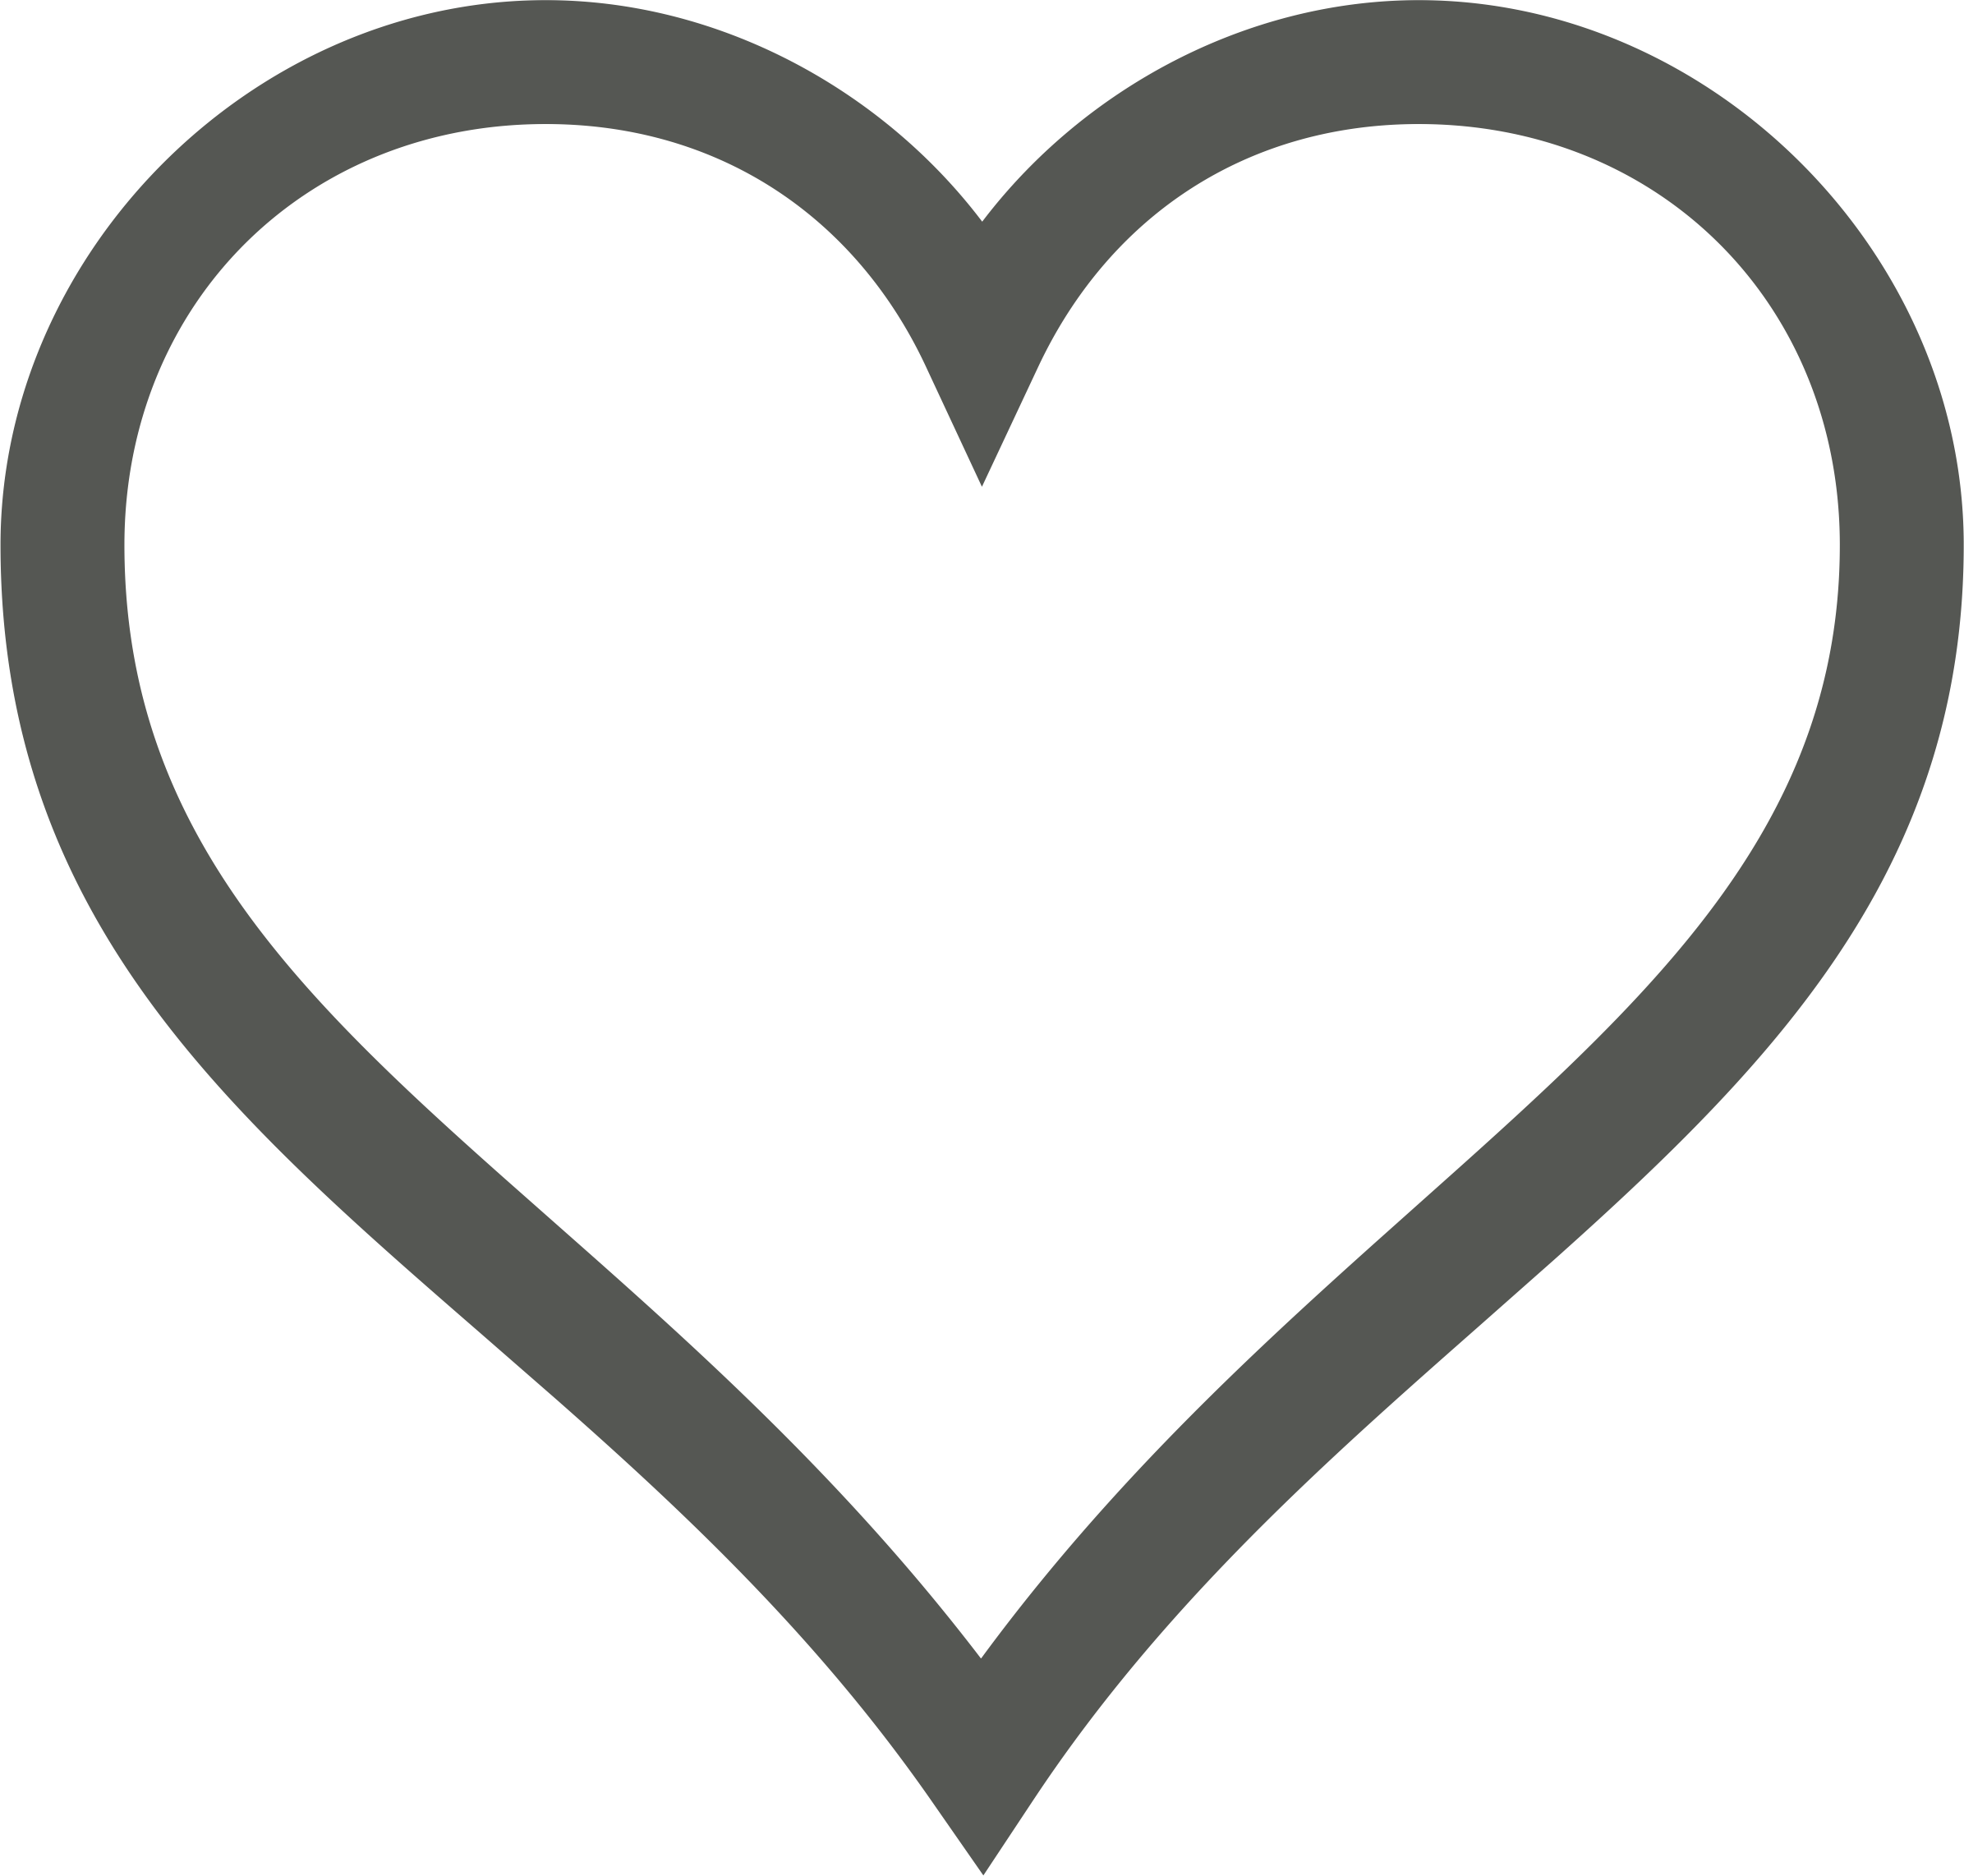 Clipart deselected big image. Heart icon png free stock